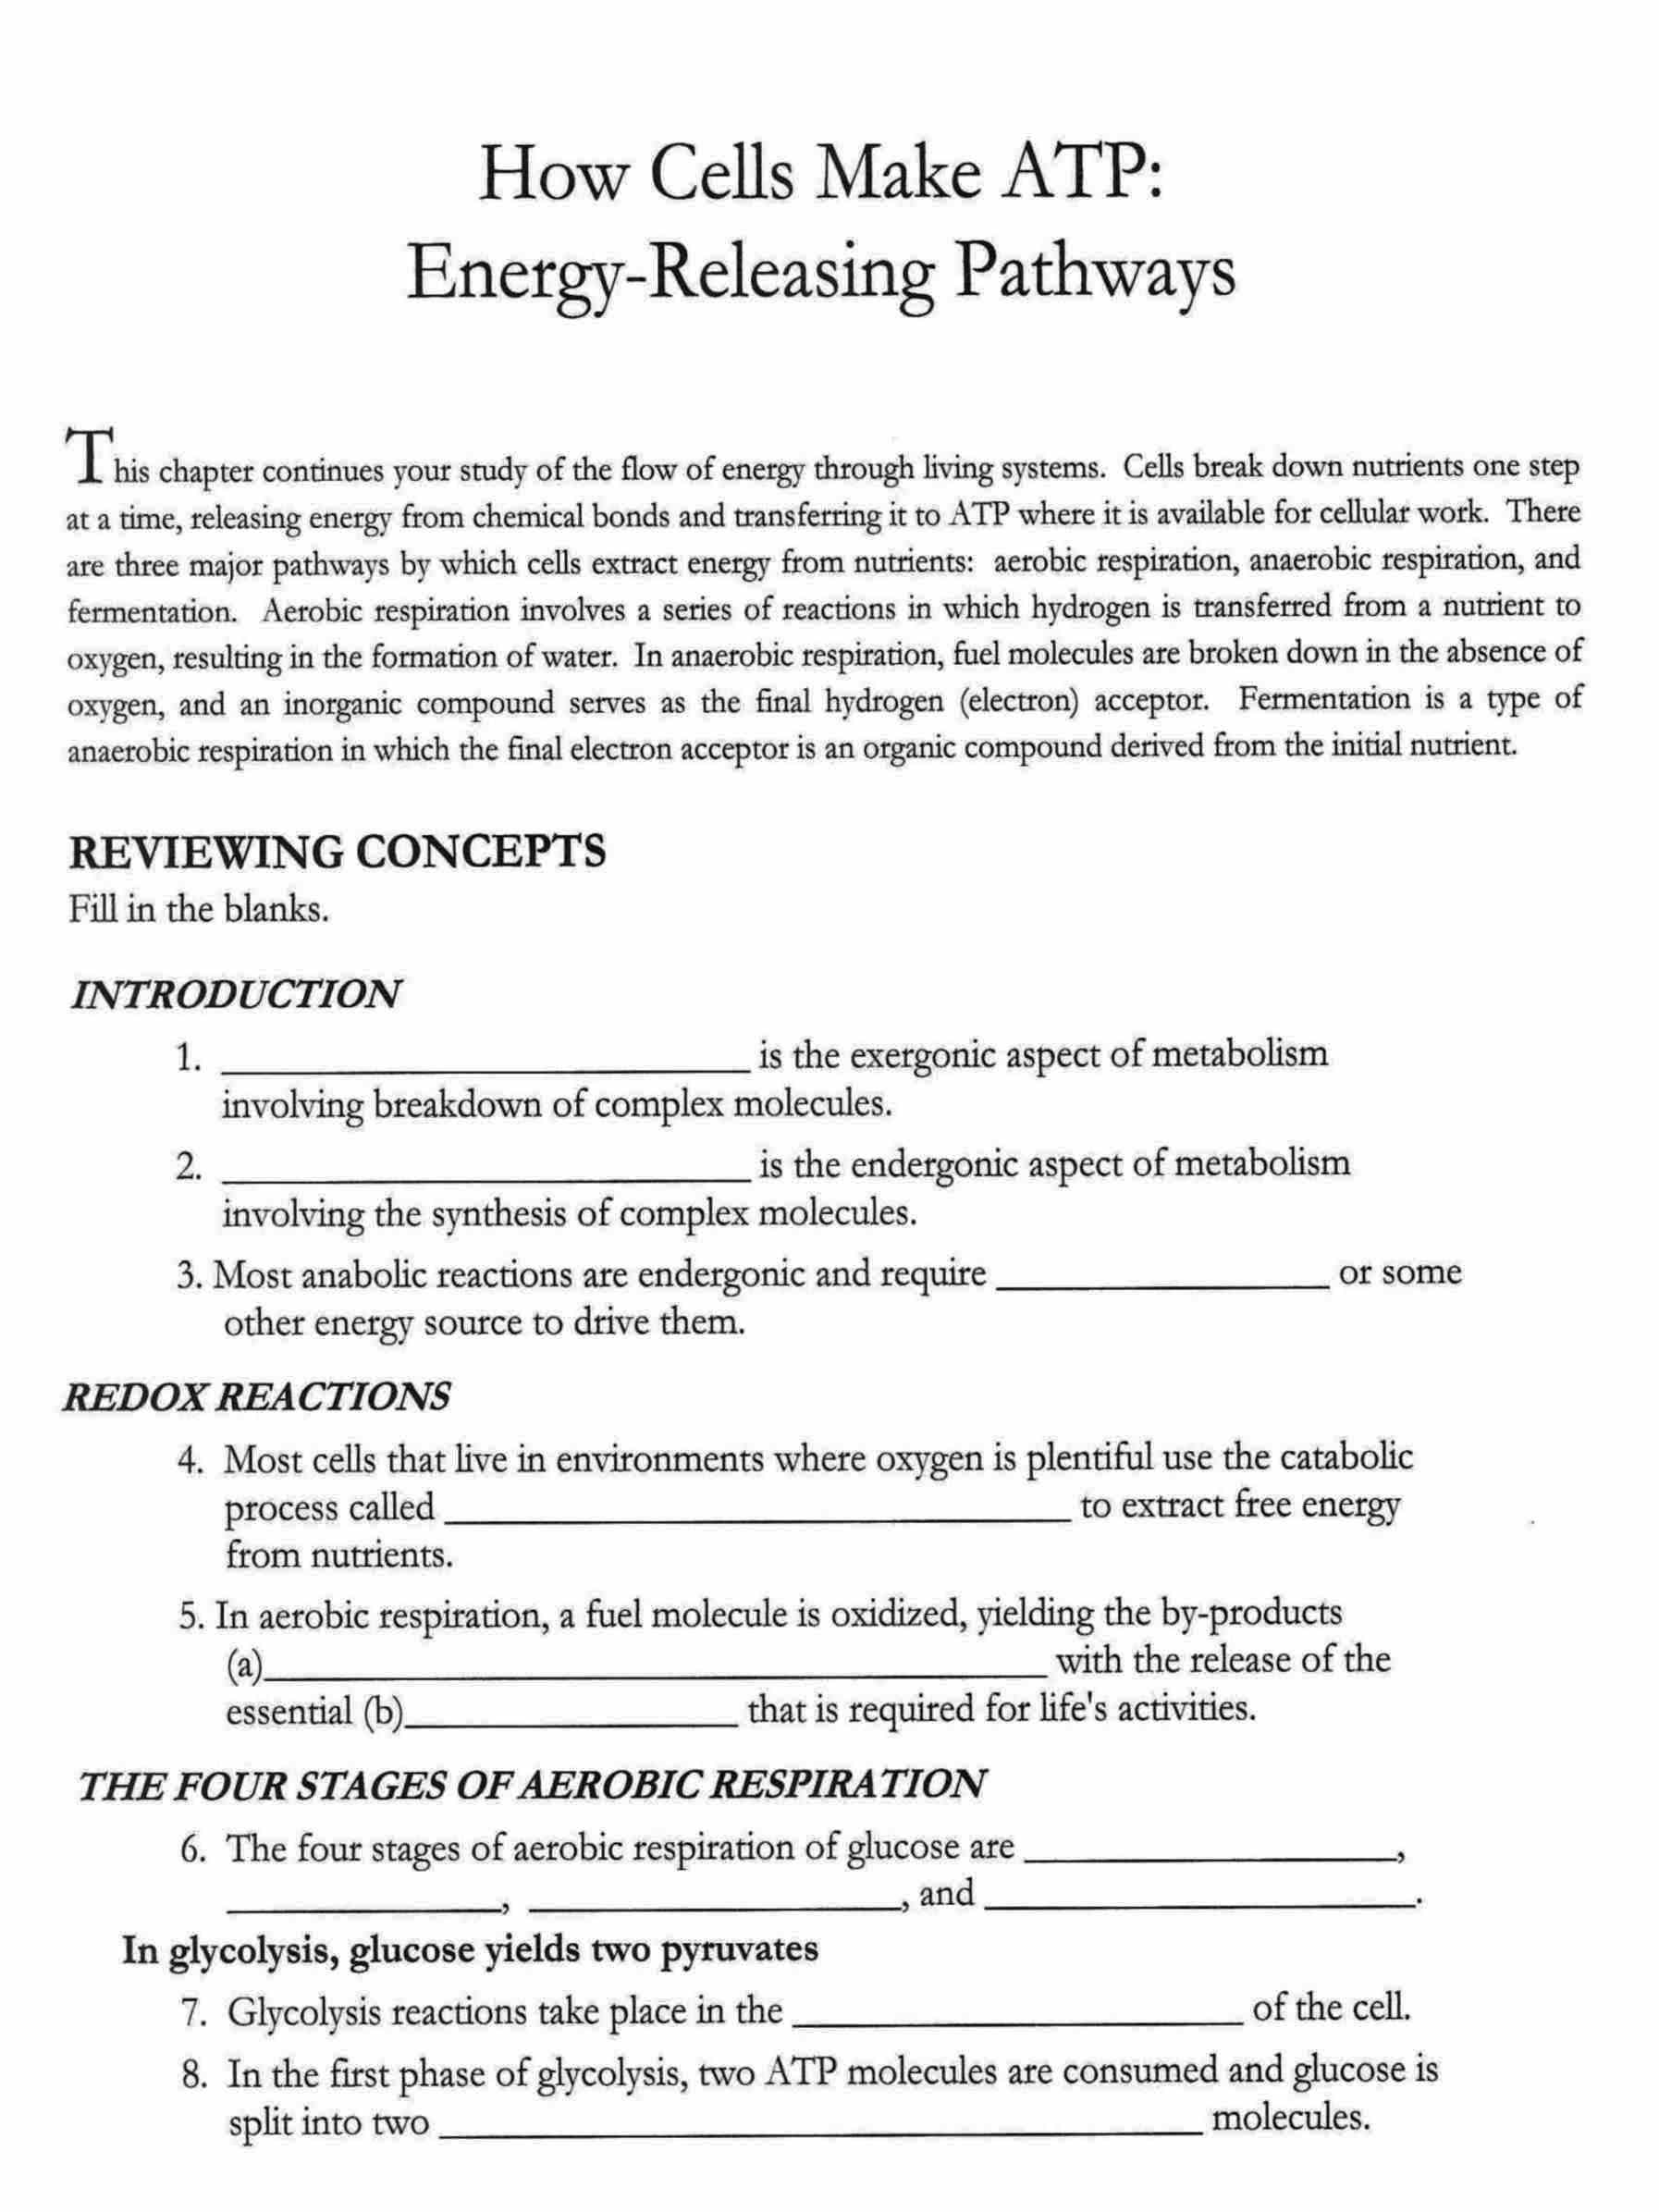 Worksheet Cellular Respiration Worksheet cellular respiration worksheet college intrepidpath worksheets tes the best and most prehensive 3 jpg